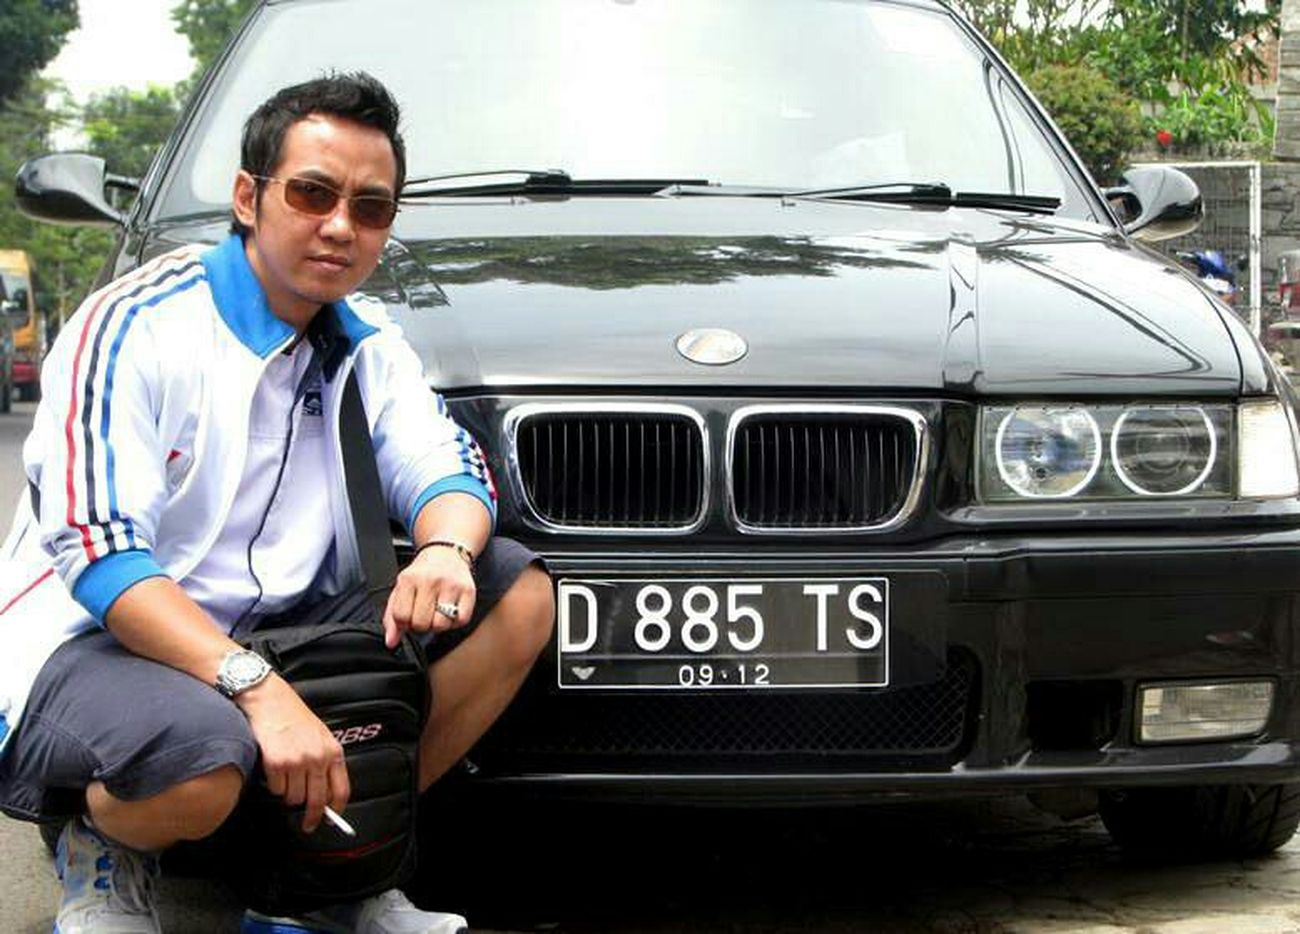 Bmw E36M3 E36 Bimmer 3 Series Taking Photos Selfportrait Selfie ✌ Hi! Jakarta Indonesia